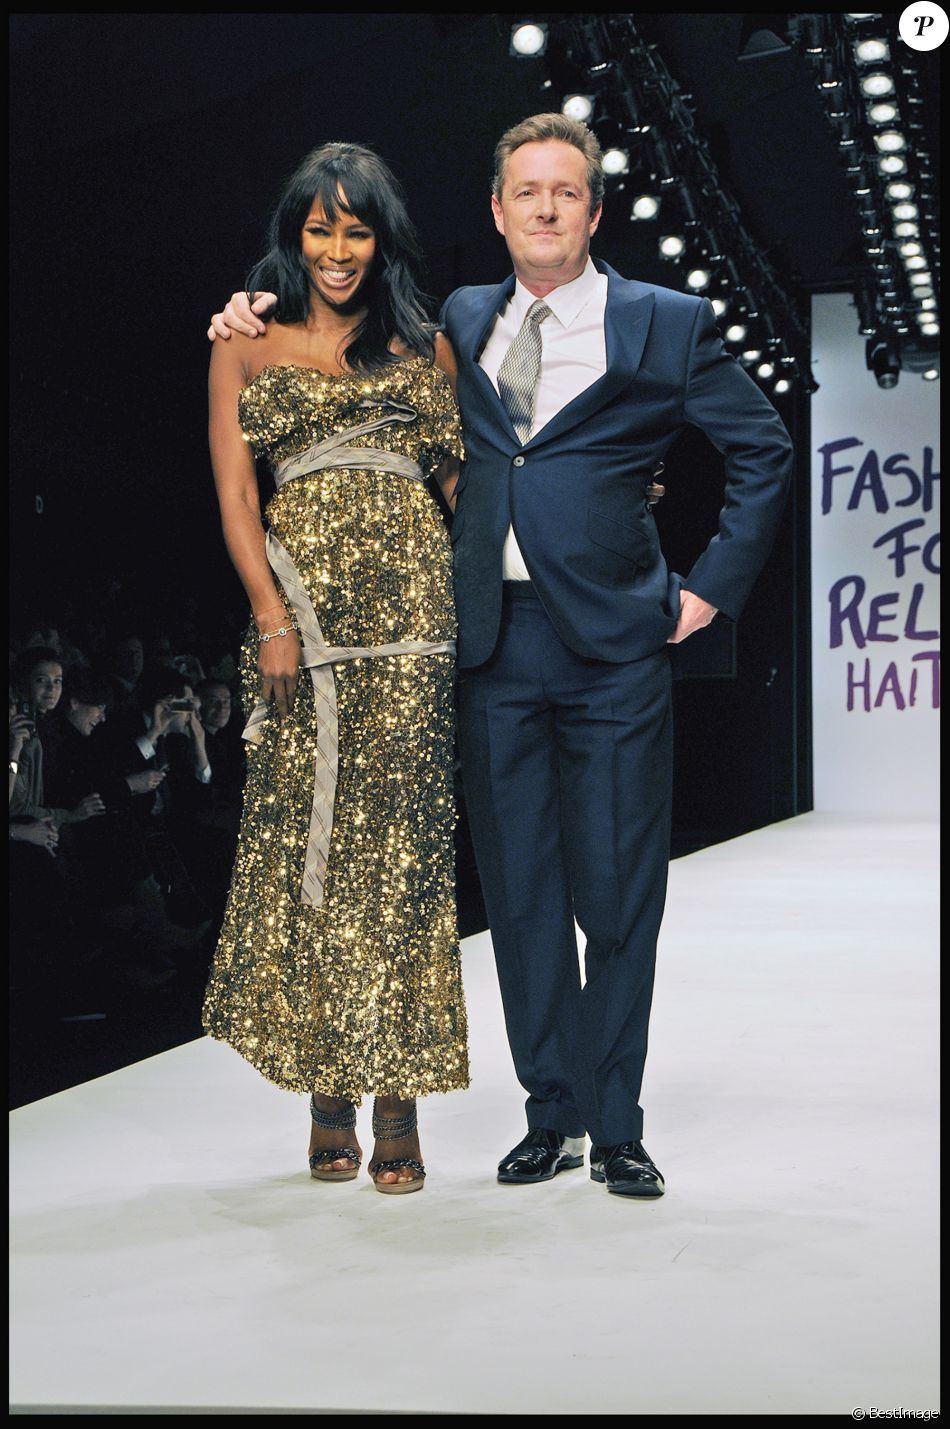 Piers Morgan avec Naomi Campbell lors du défilé Fashion for Relief Haïti en février 2010 à la Fashion Week de Londres.